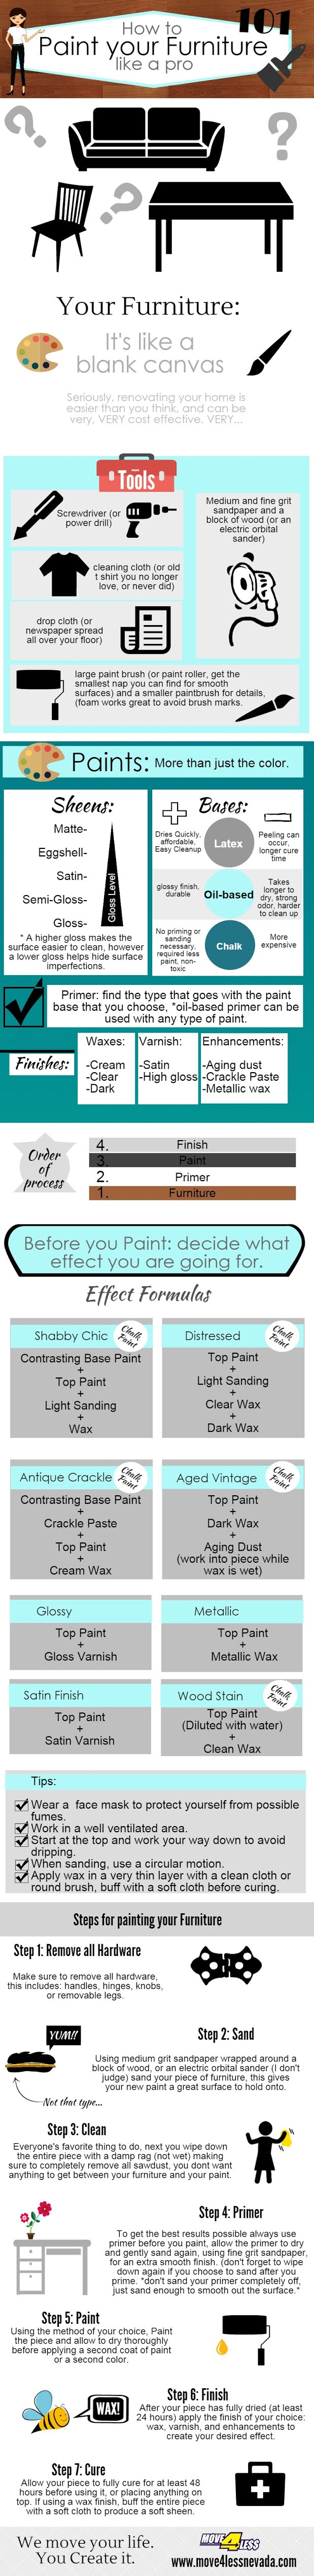 How To Paint Your Furniture Like a Pro